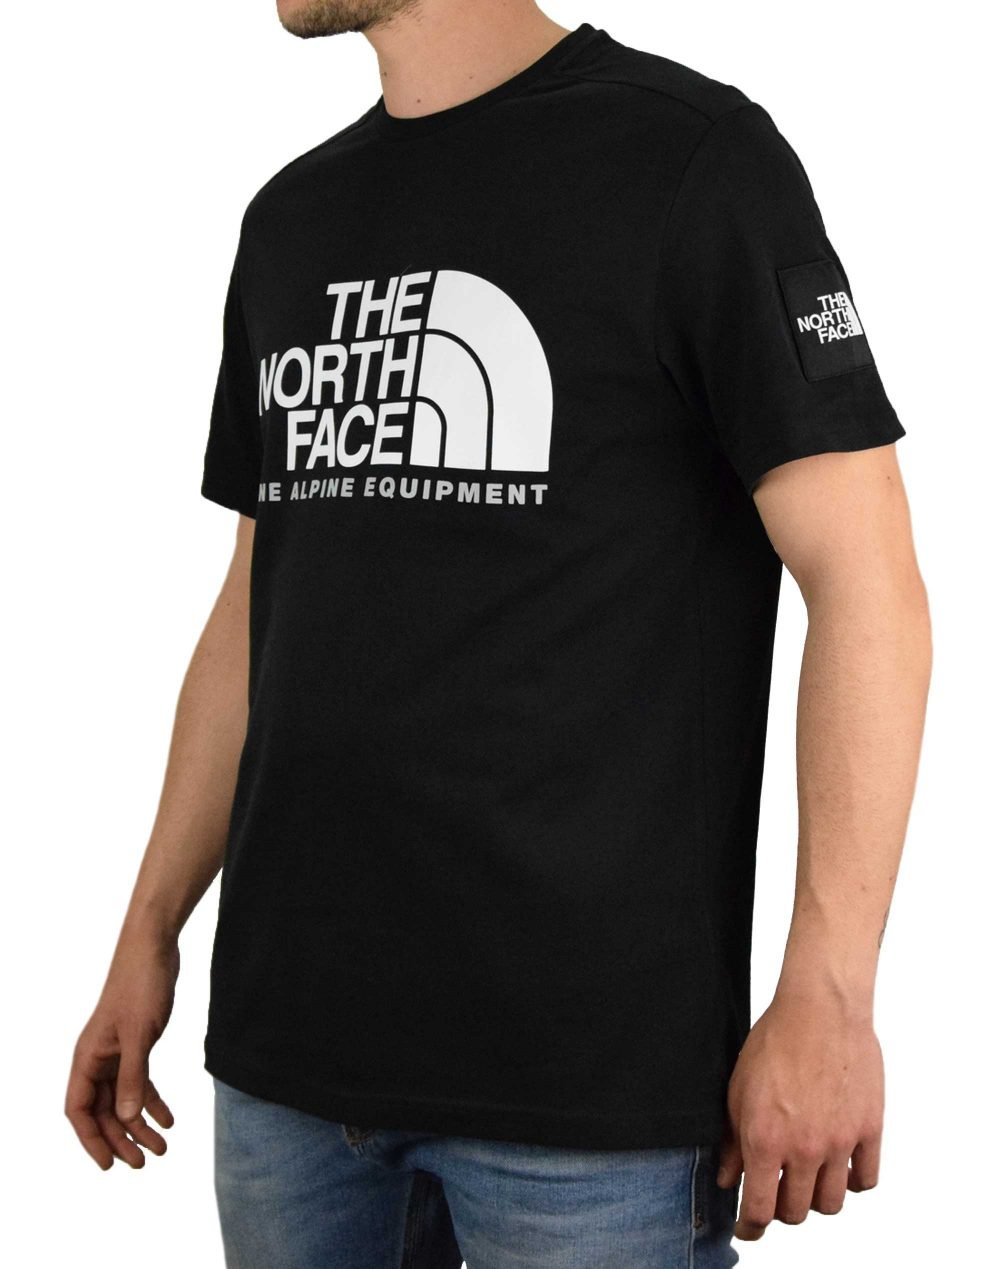 The North Face Fine Alpine 2 Tee (NF0A4M6NJK31) Black